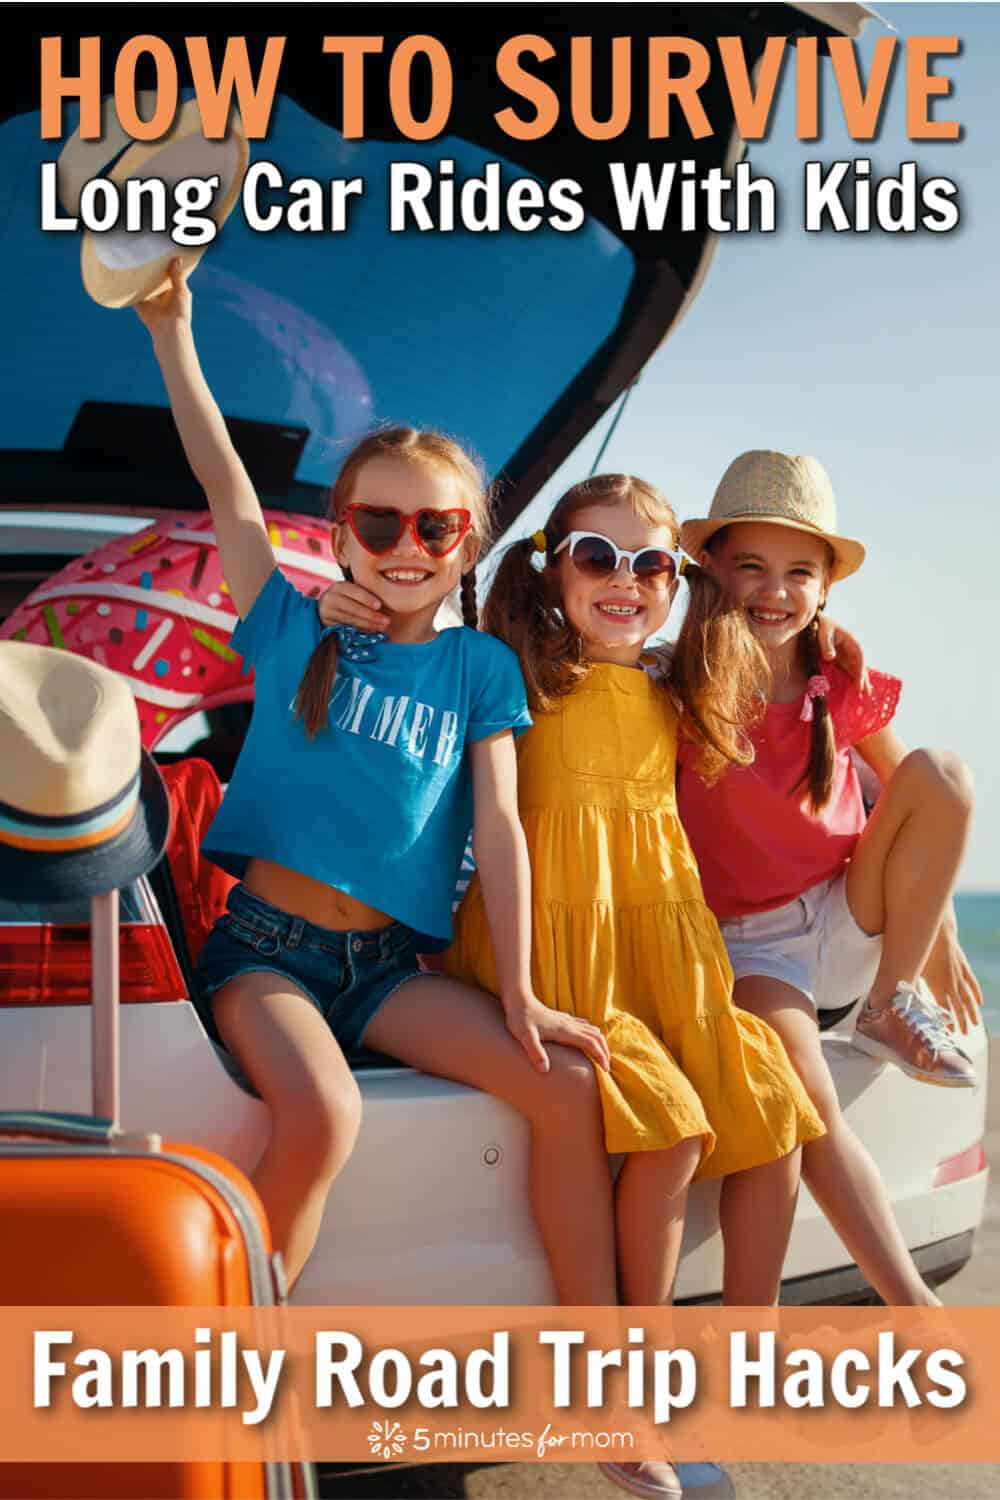 Family Road Trip Hacks - Top Tips For Surviving Long Car Rides With Kids